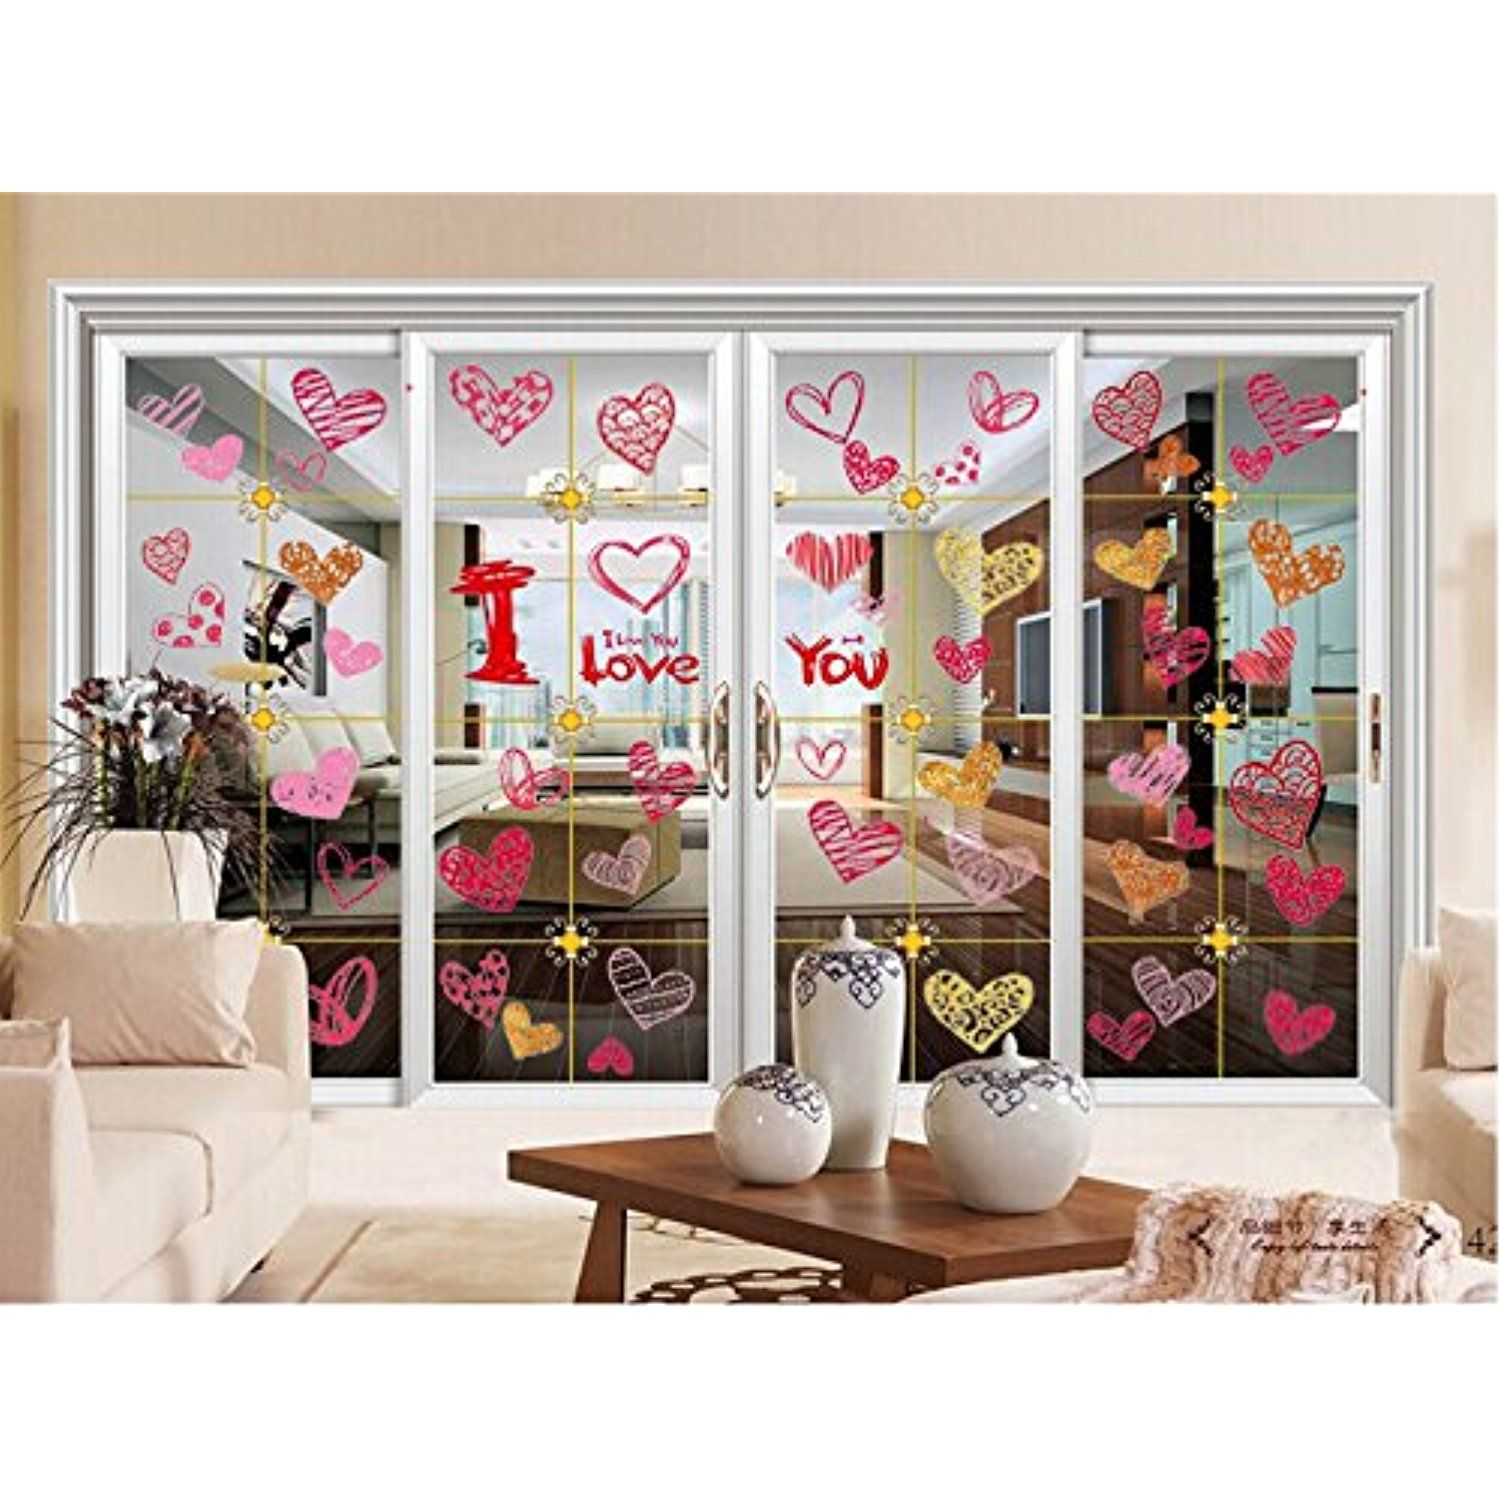 Raumaufkleber für mädchen window stickers wall decal door clings for party decoration  pcs